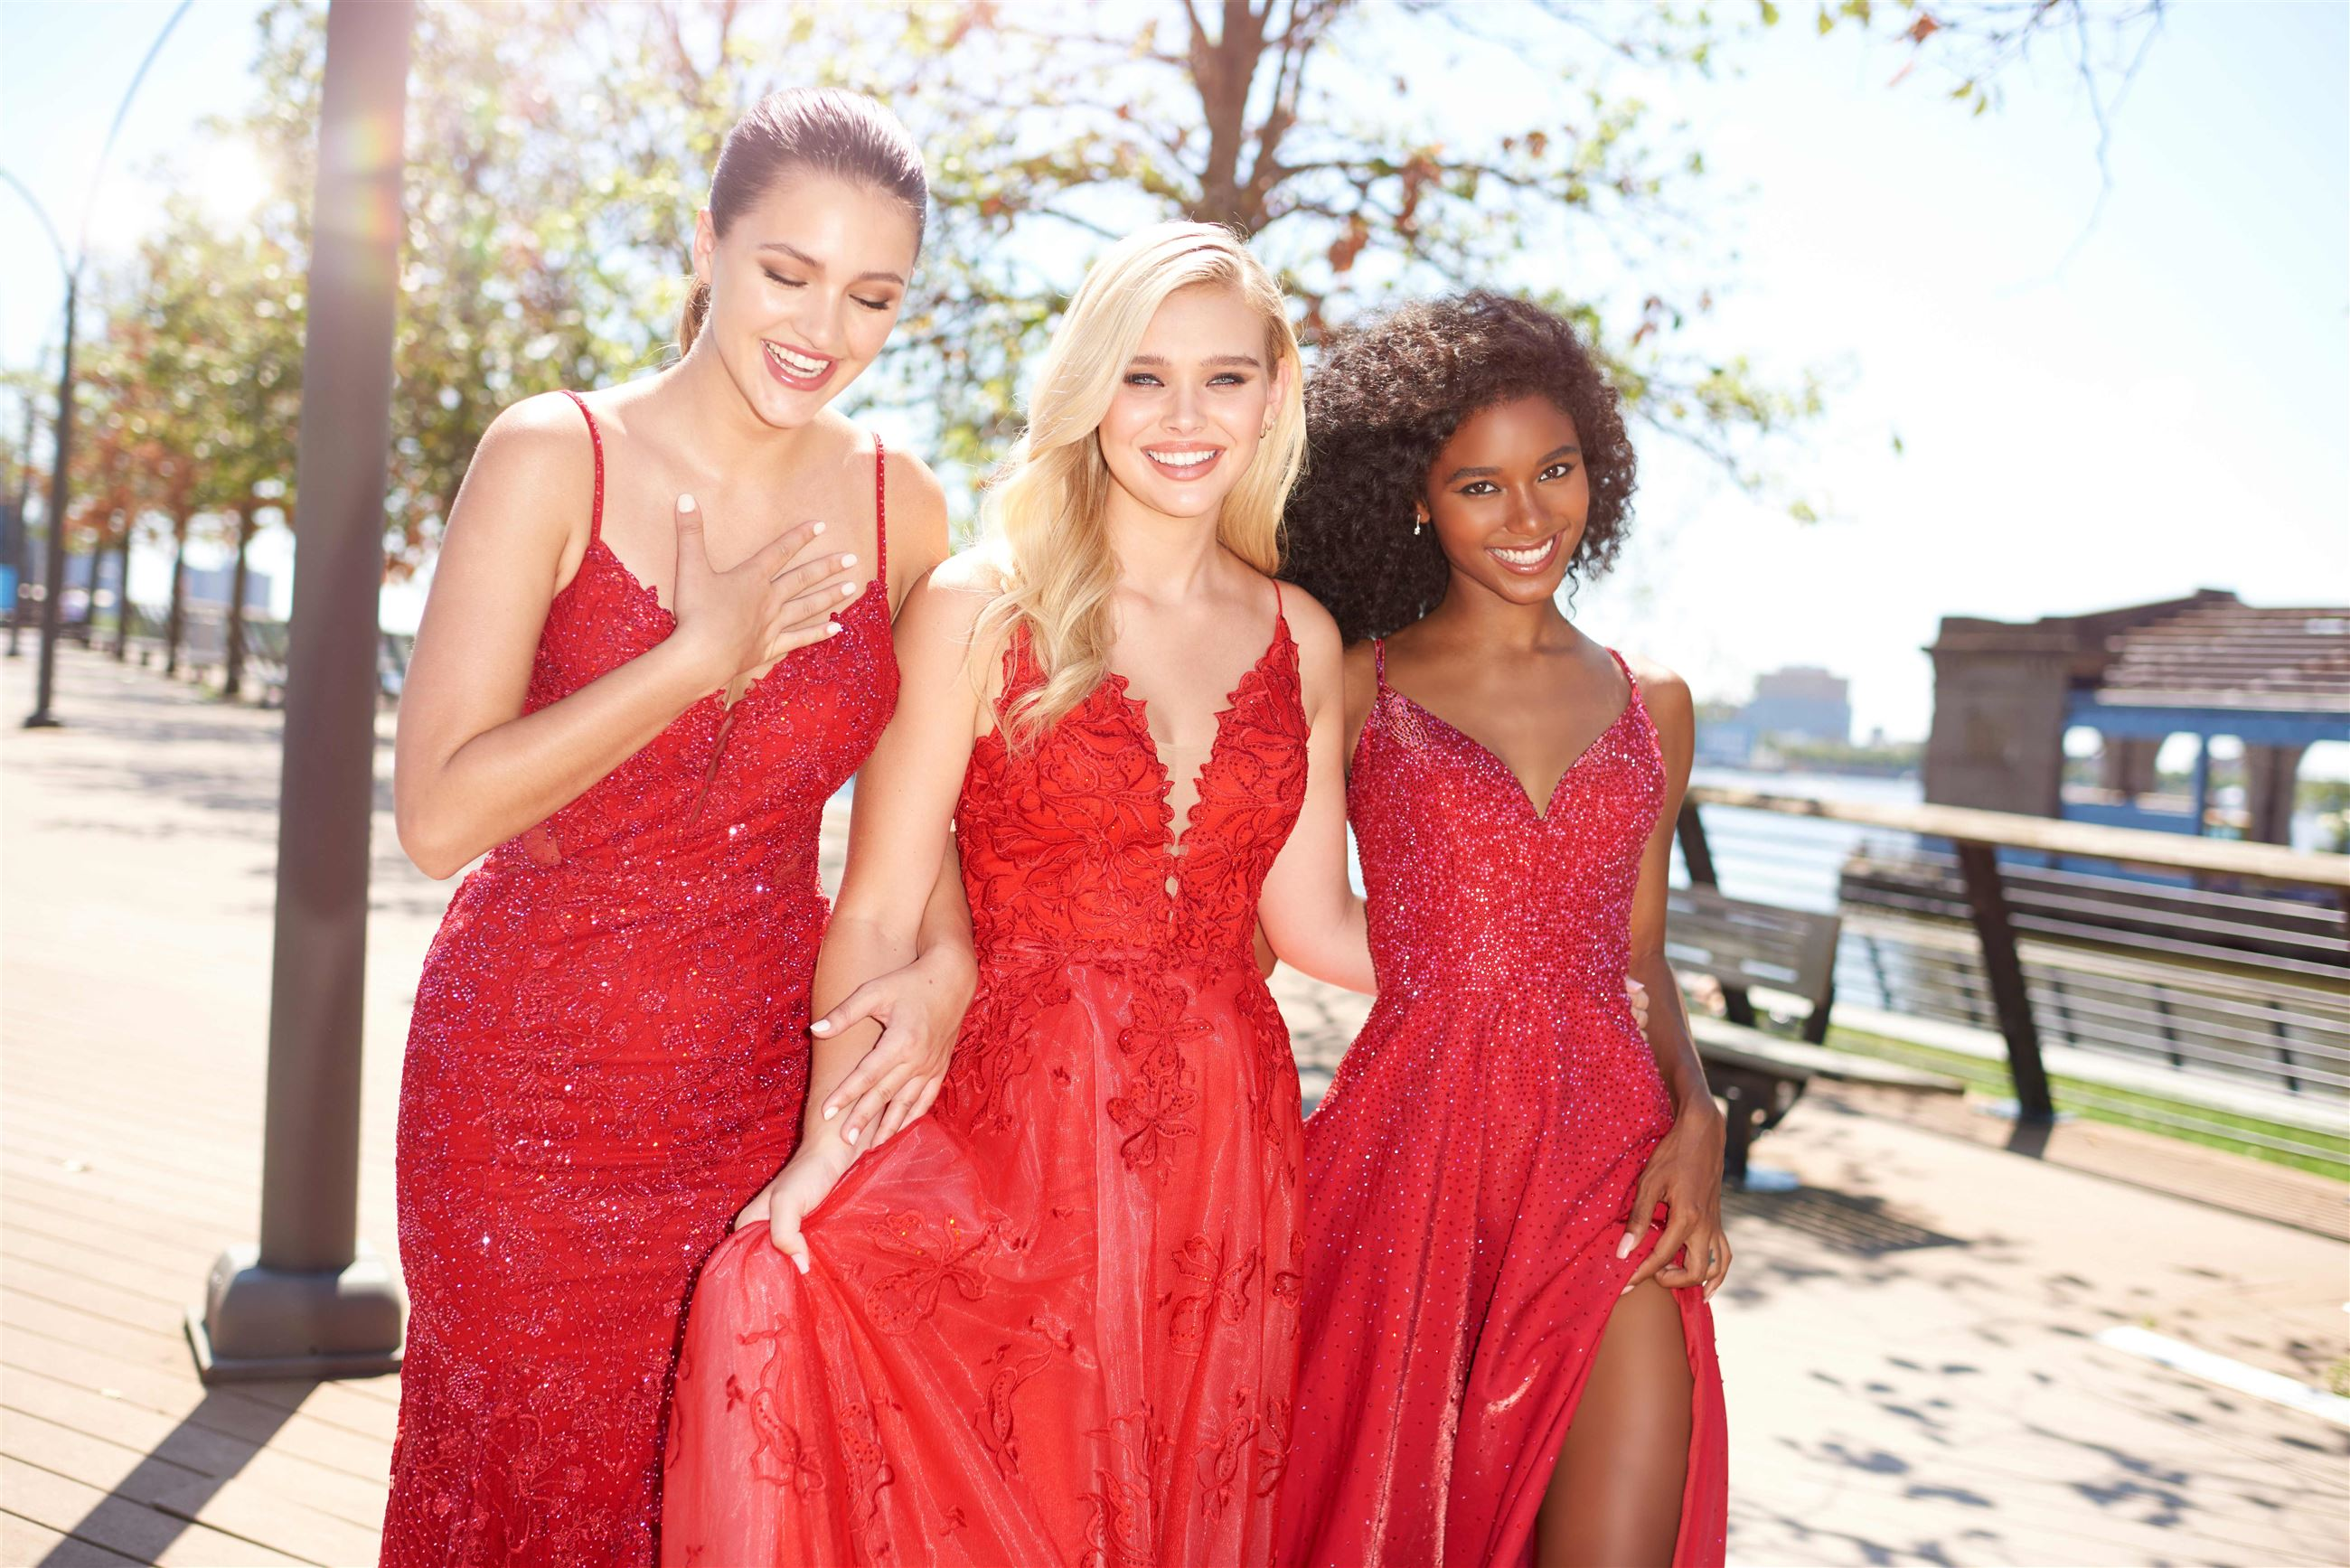 3 girls smiling and walking down the street in red Ellie Wilde prom dresses